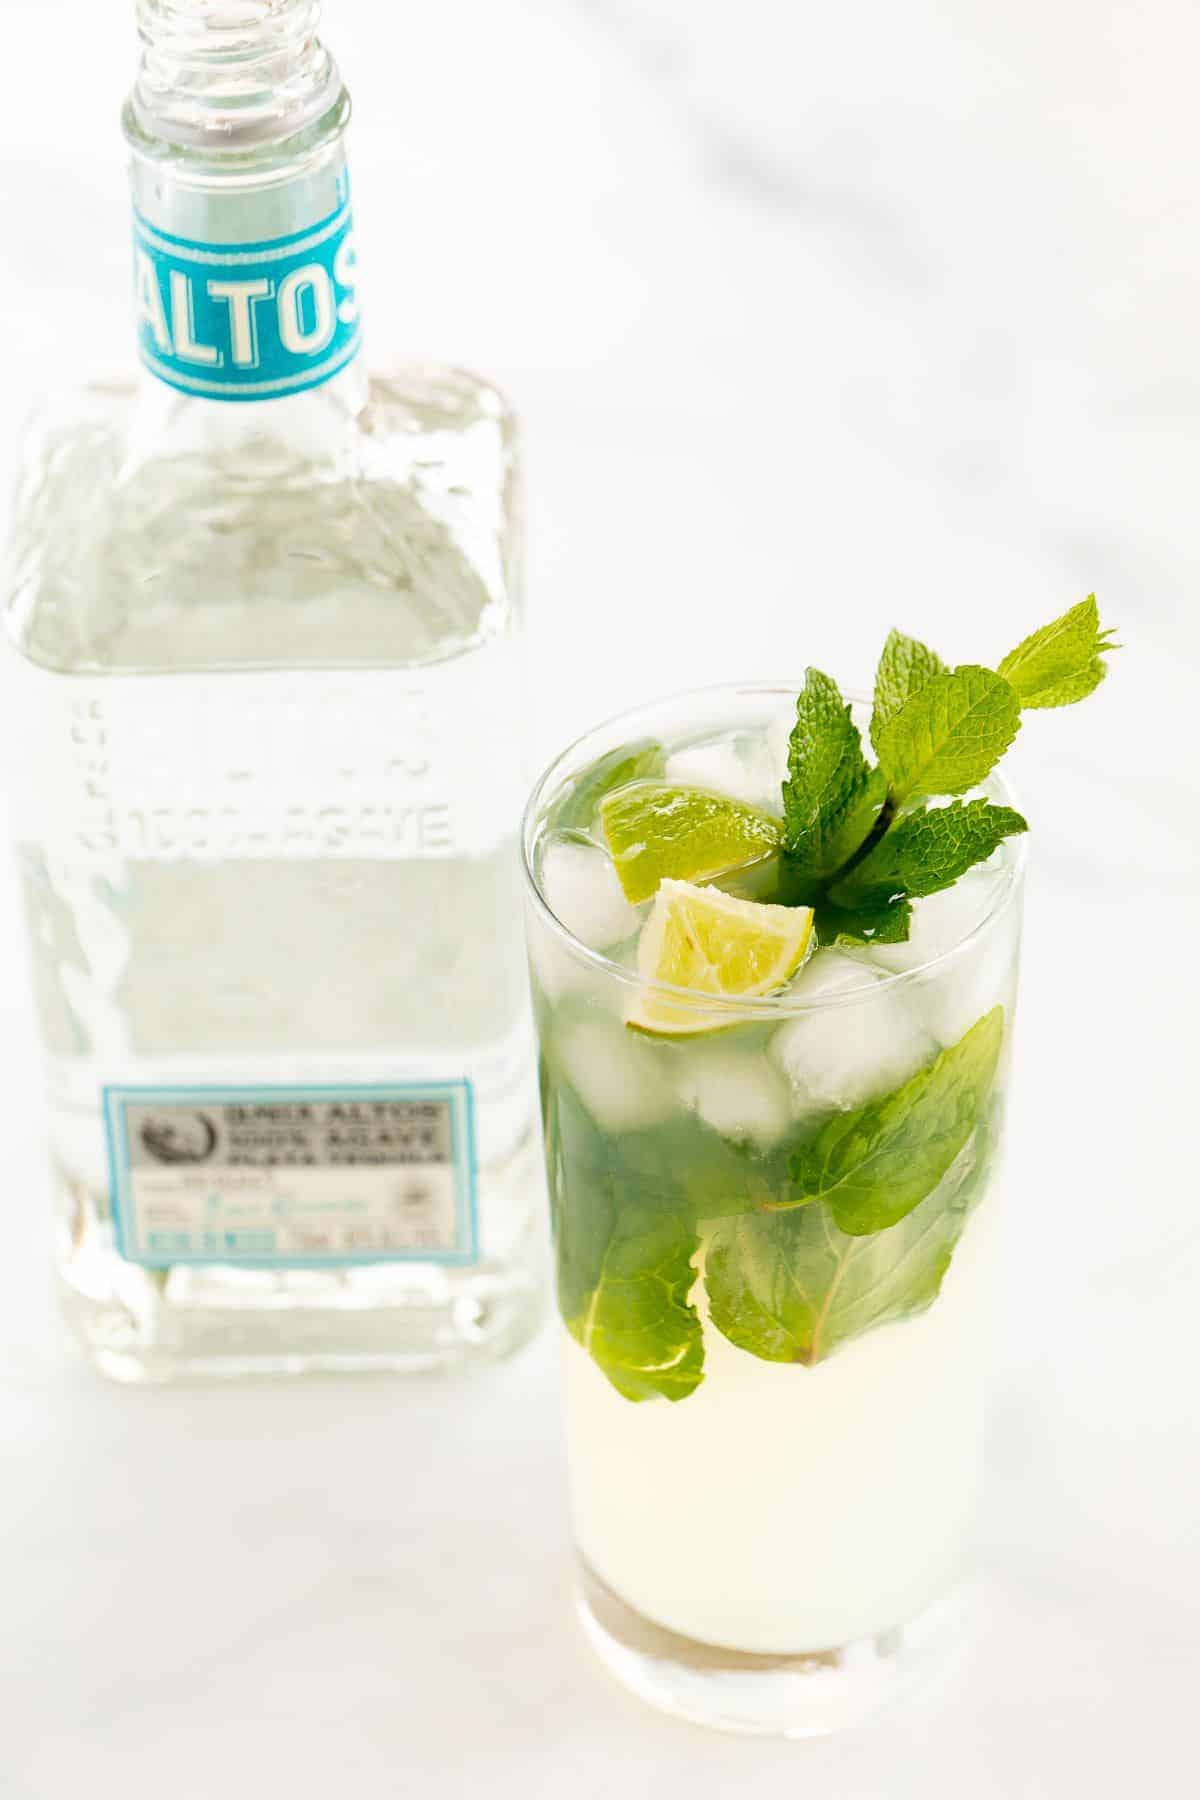 A tequila mojito in a clear glass on a white surface, garnished with wedges of lime and fresh mint, bottle of tequila in the background.